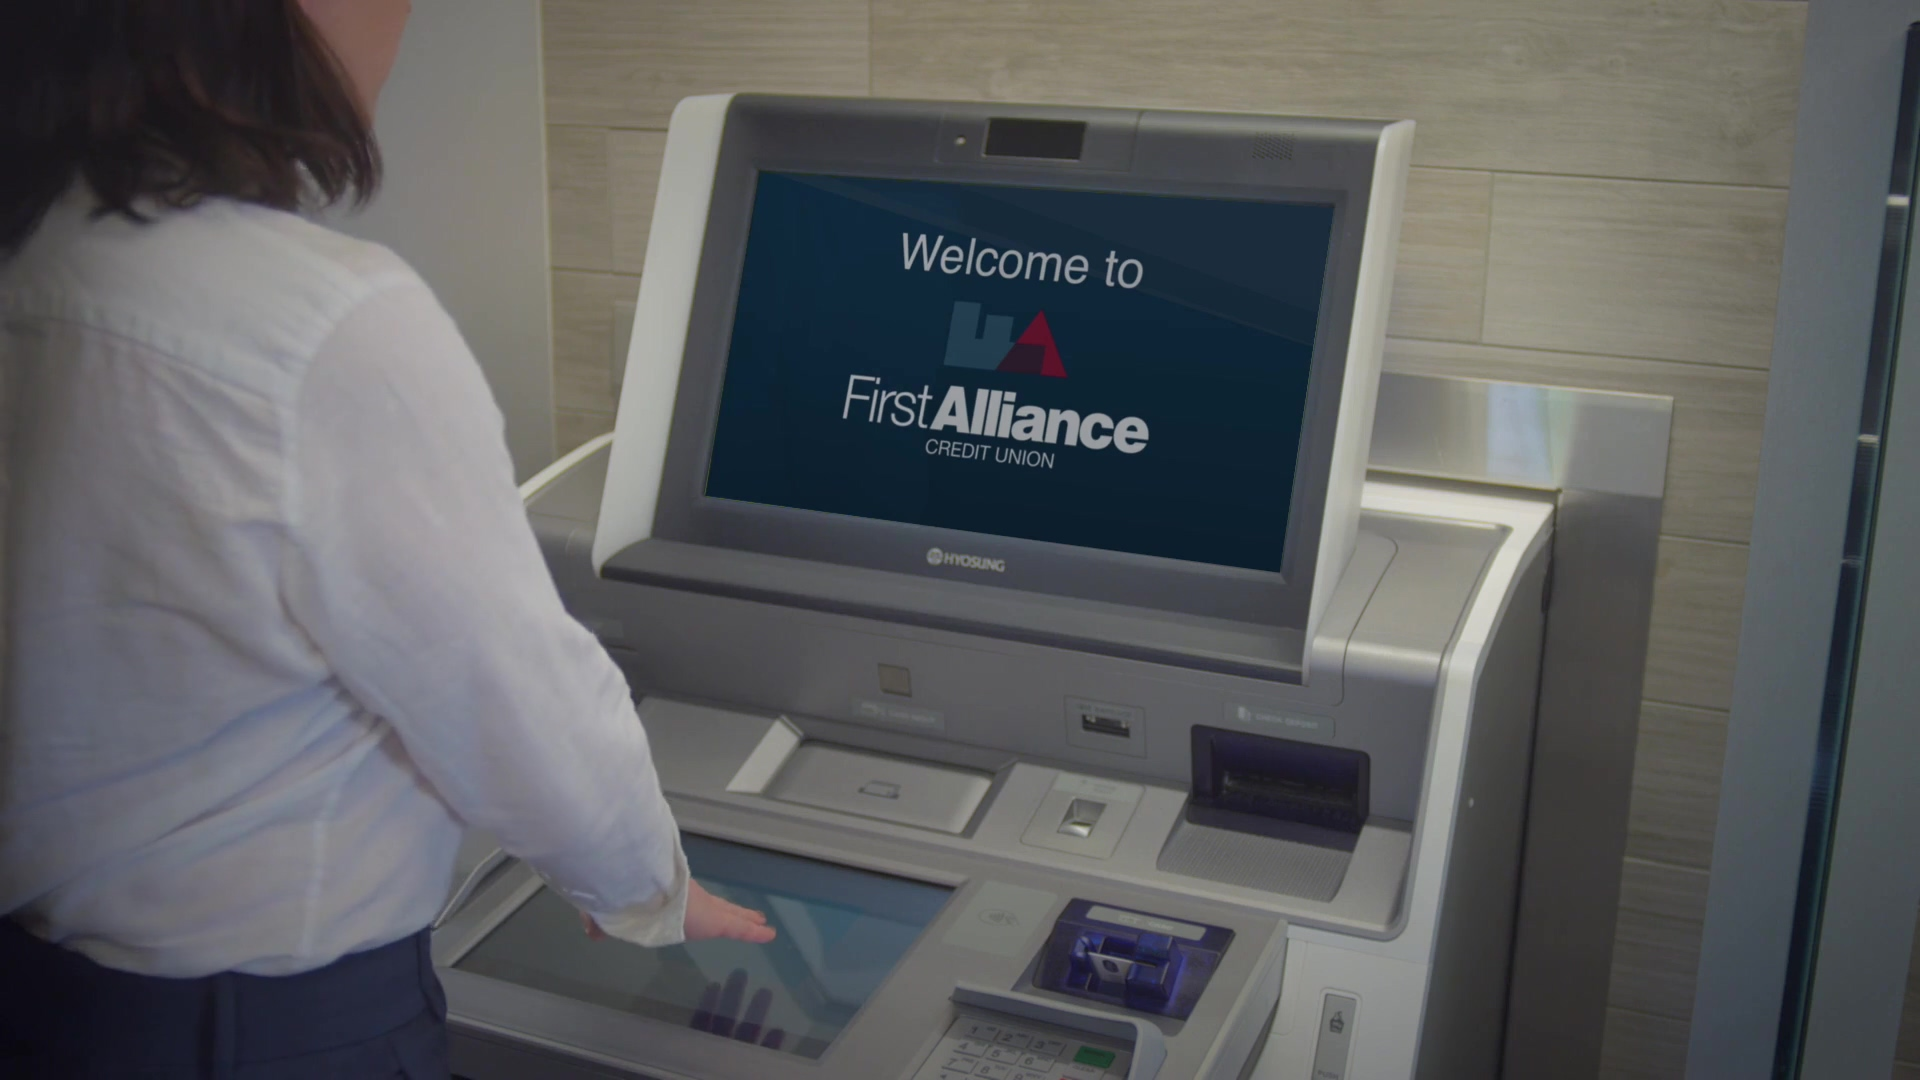 First Alliance Advisor Supported Kiosk ITM Introduction Email